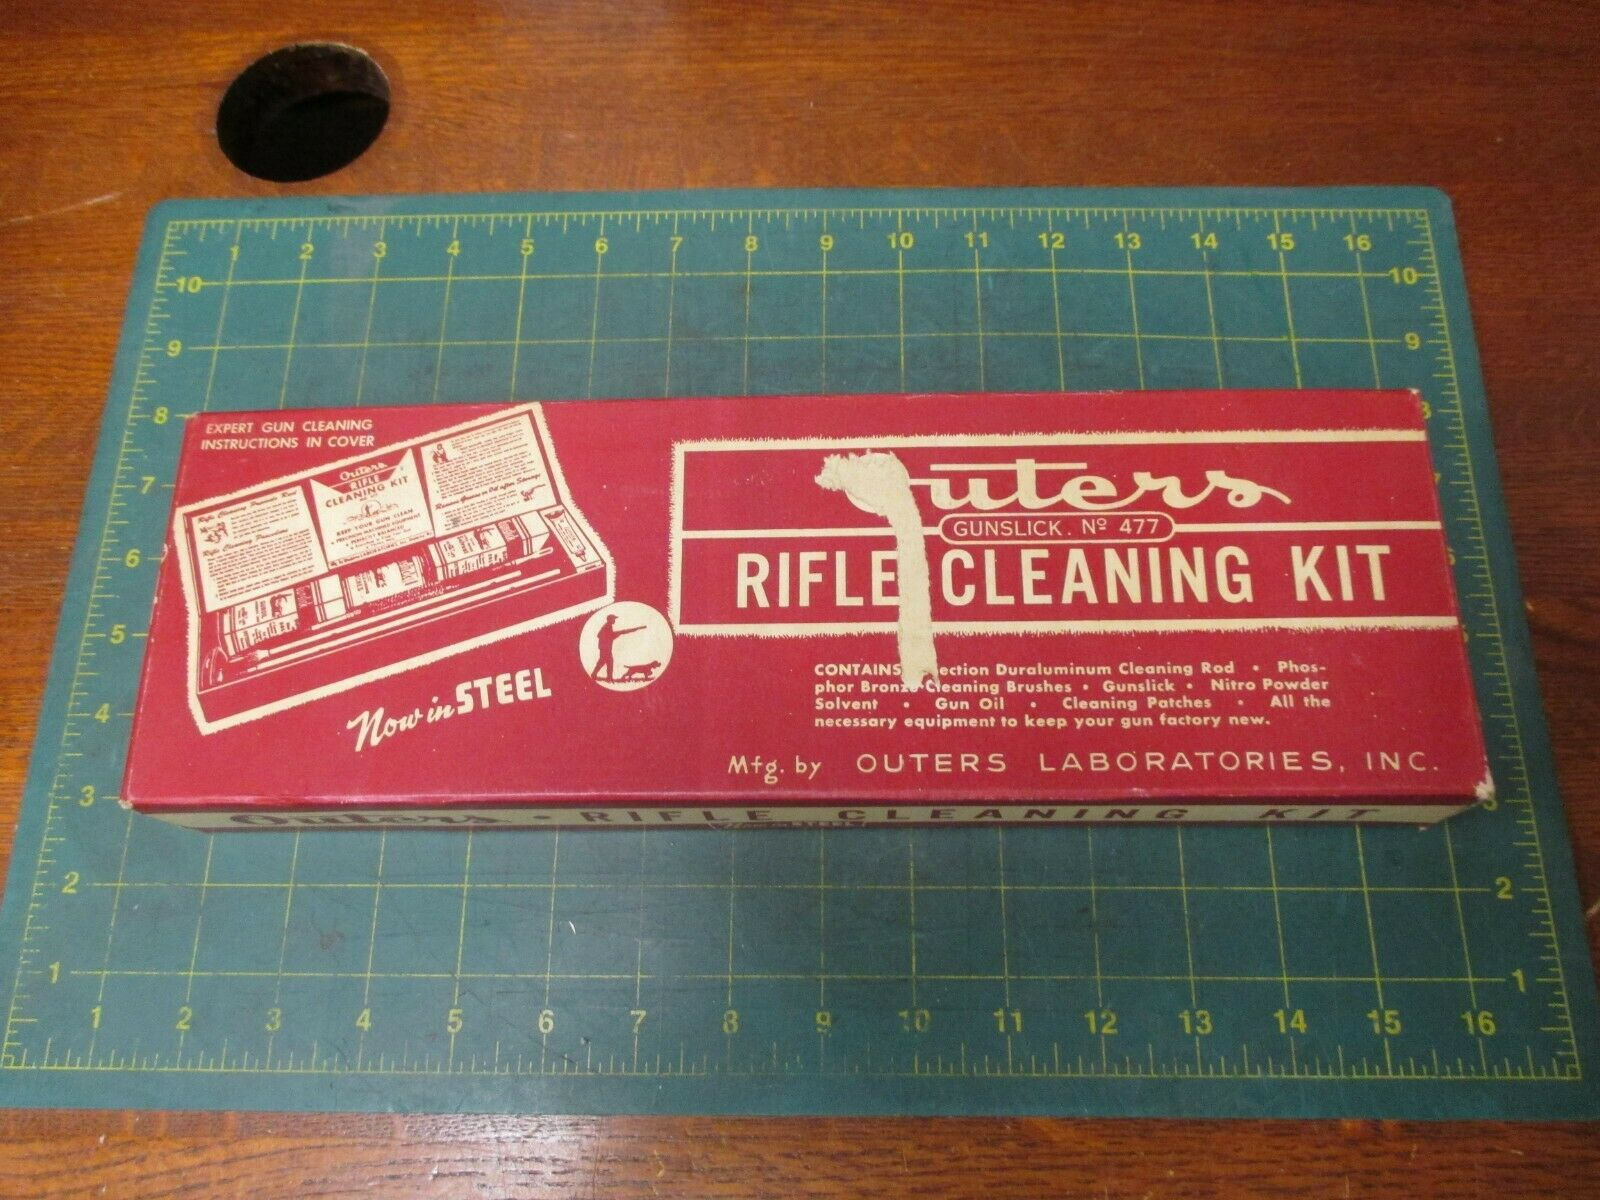 FIREARMS * VINTAGE RIFLE CLEANING KIT * OUTERS * 30 CAL * 47